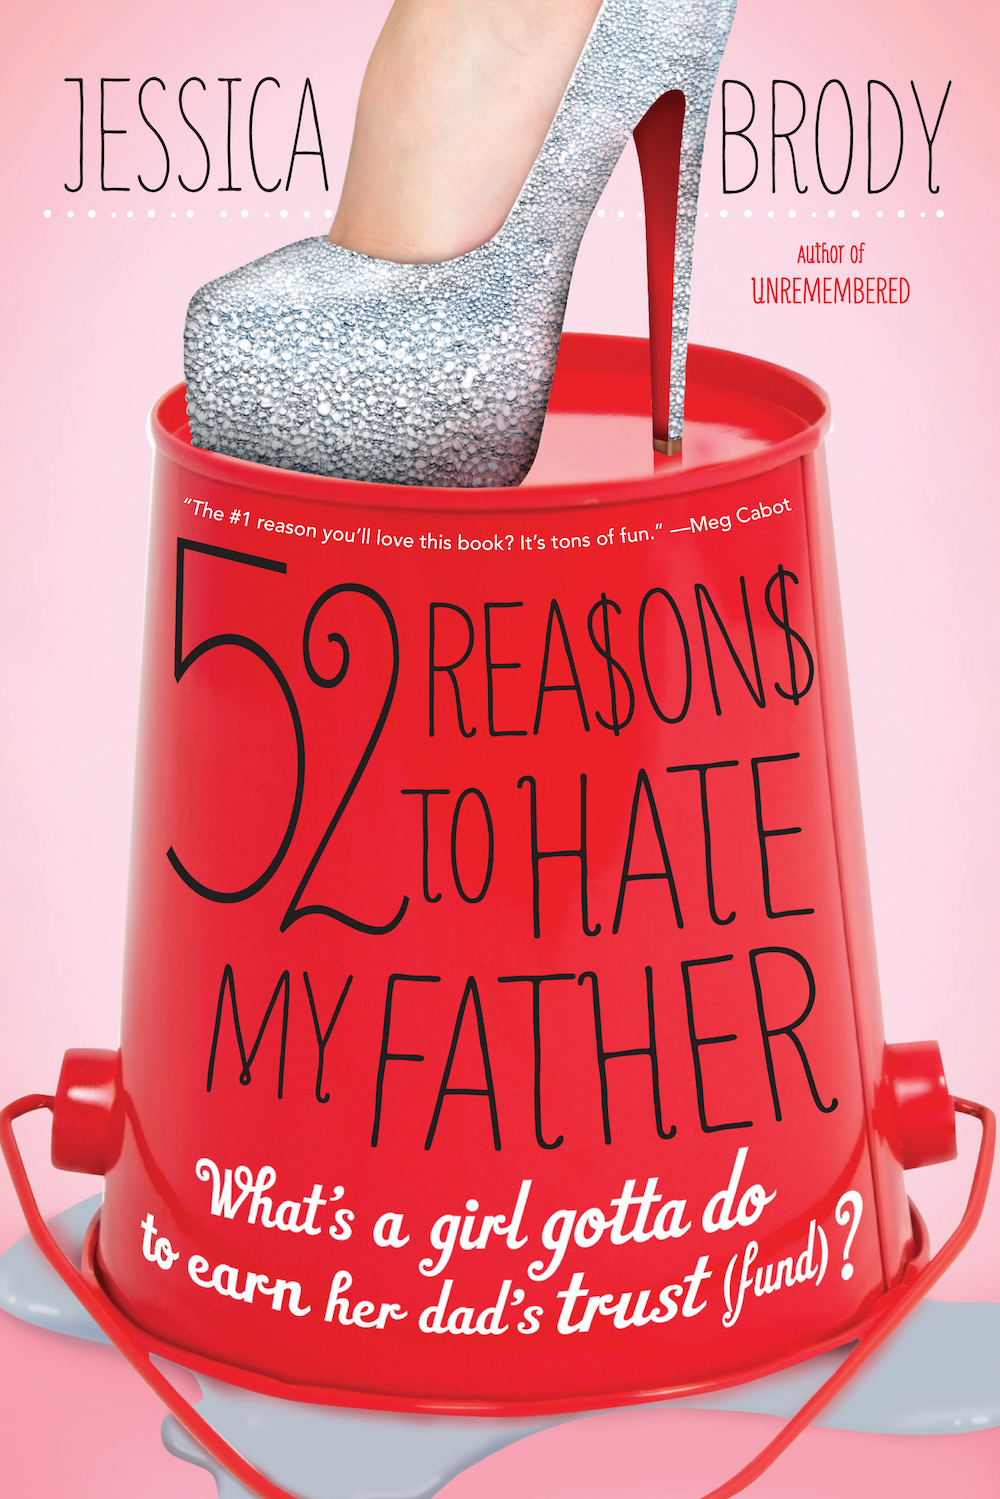 '52 Reasons To Hate My Father' Cover P 2015